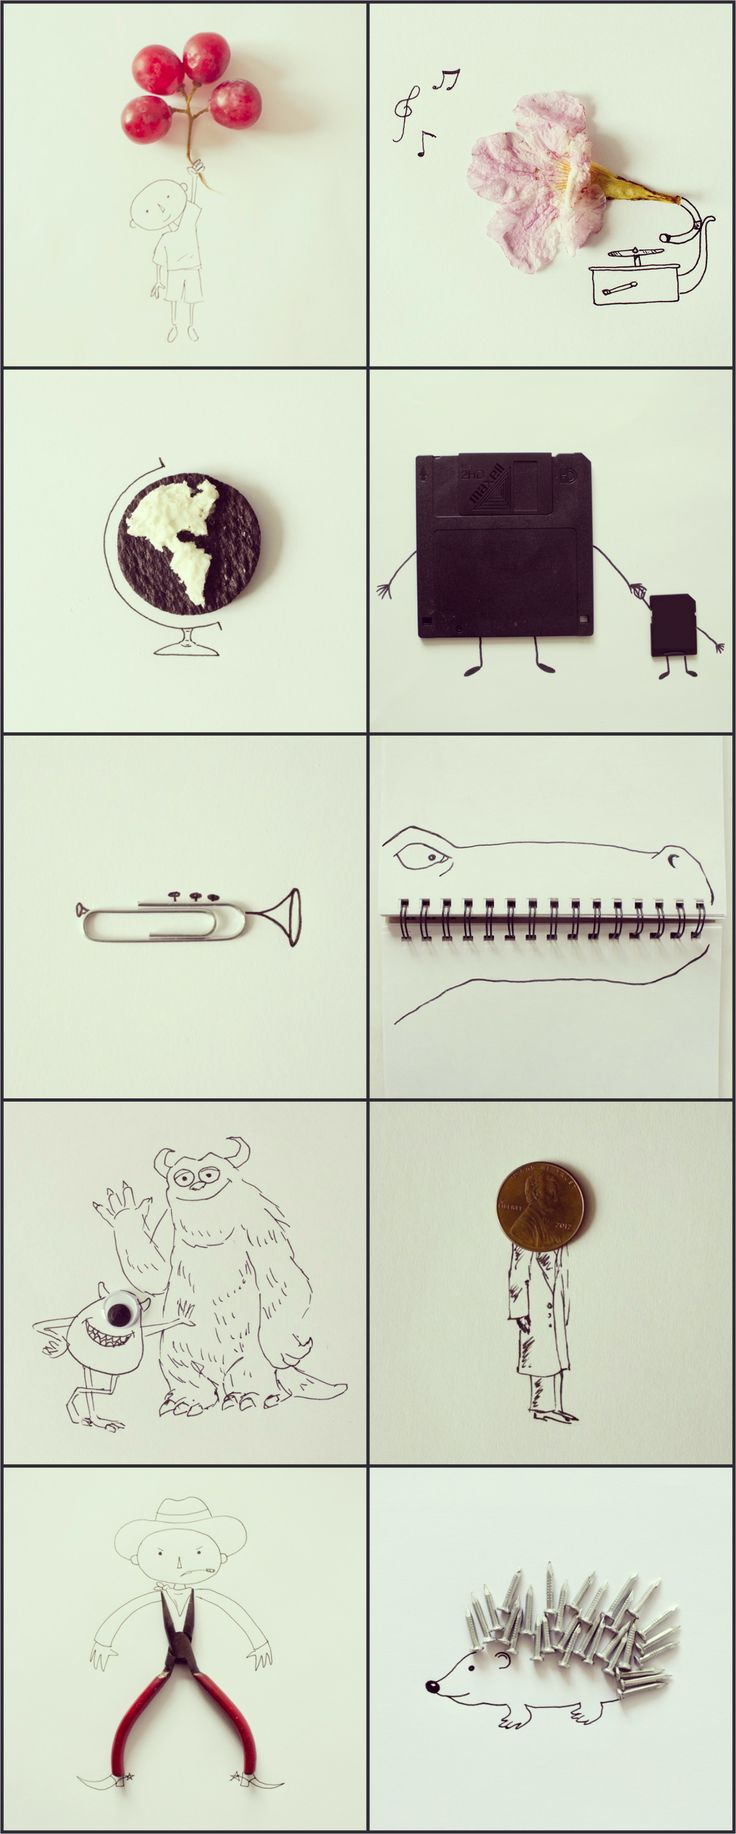 Everyday Objects Blended With Simple Sketches by Javier Perez